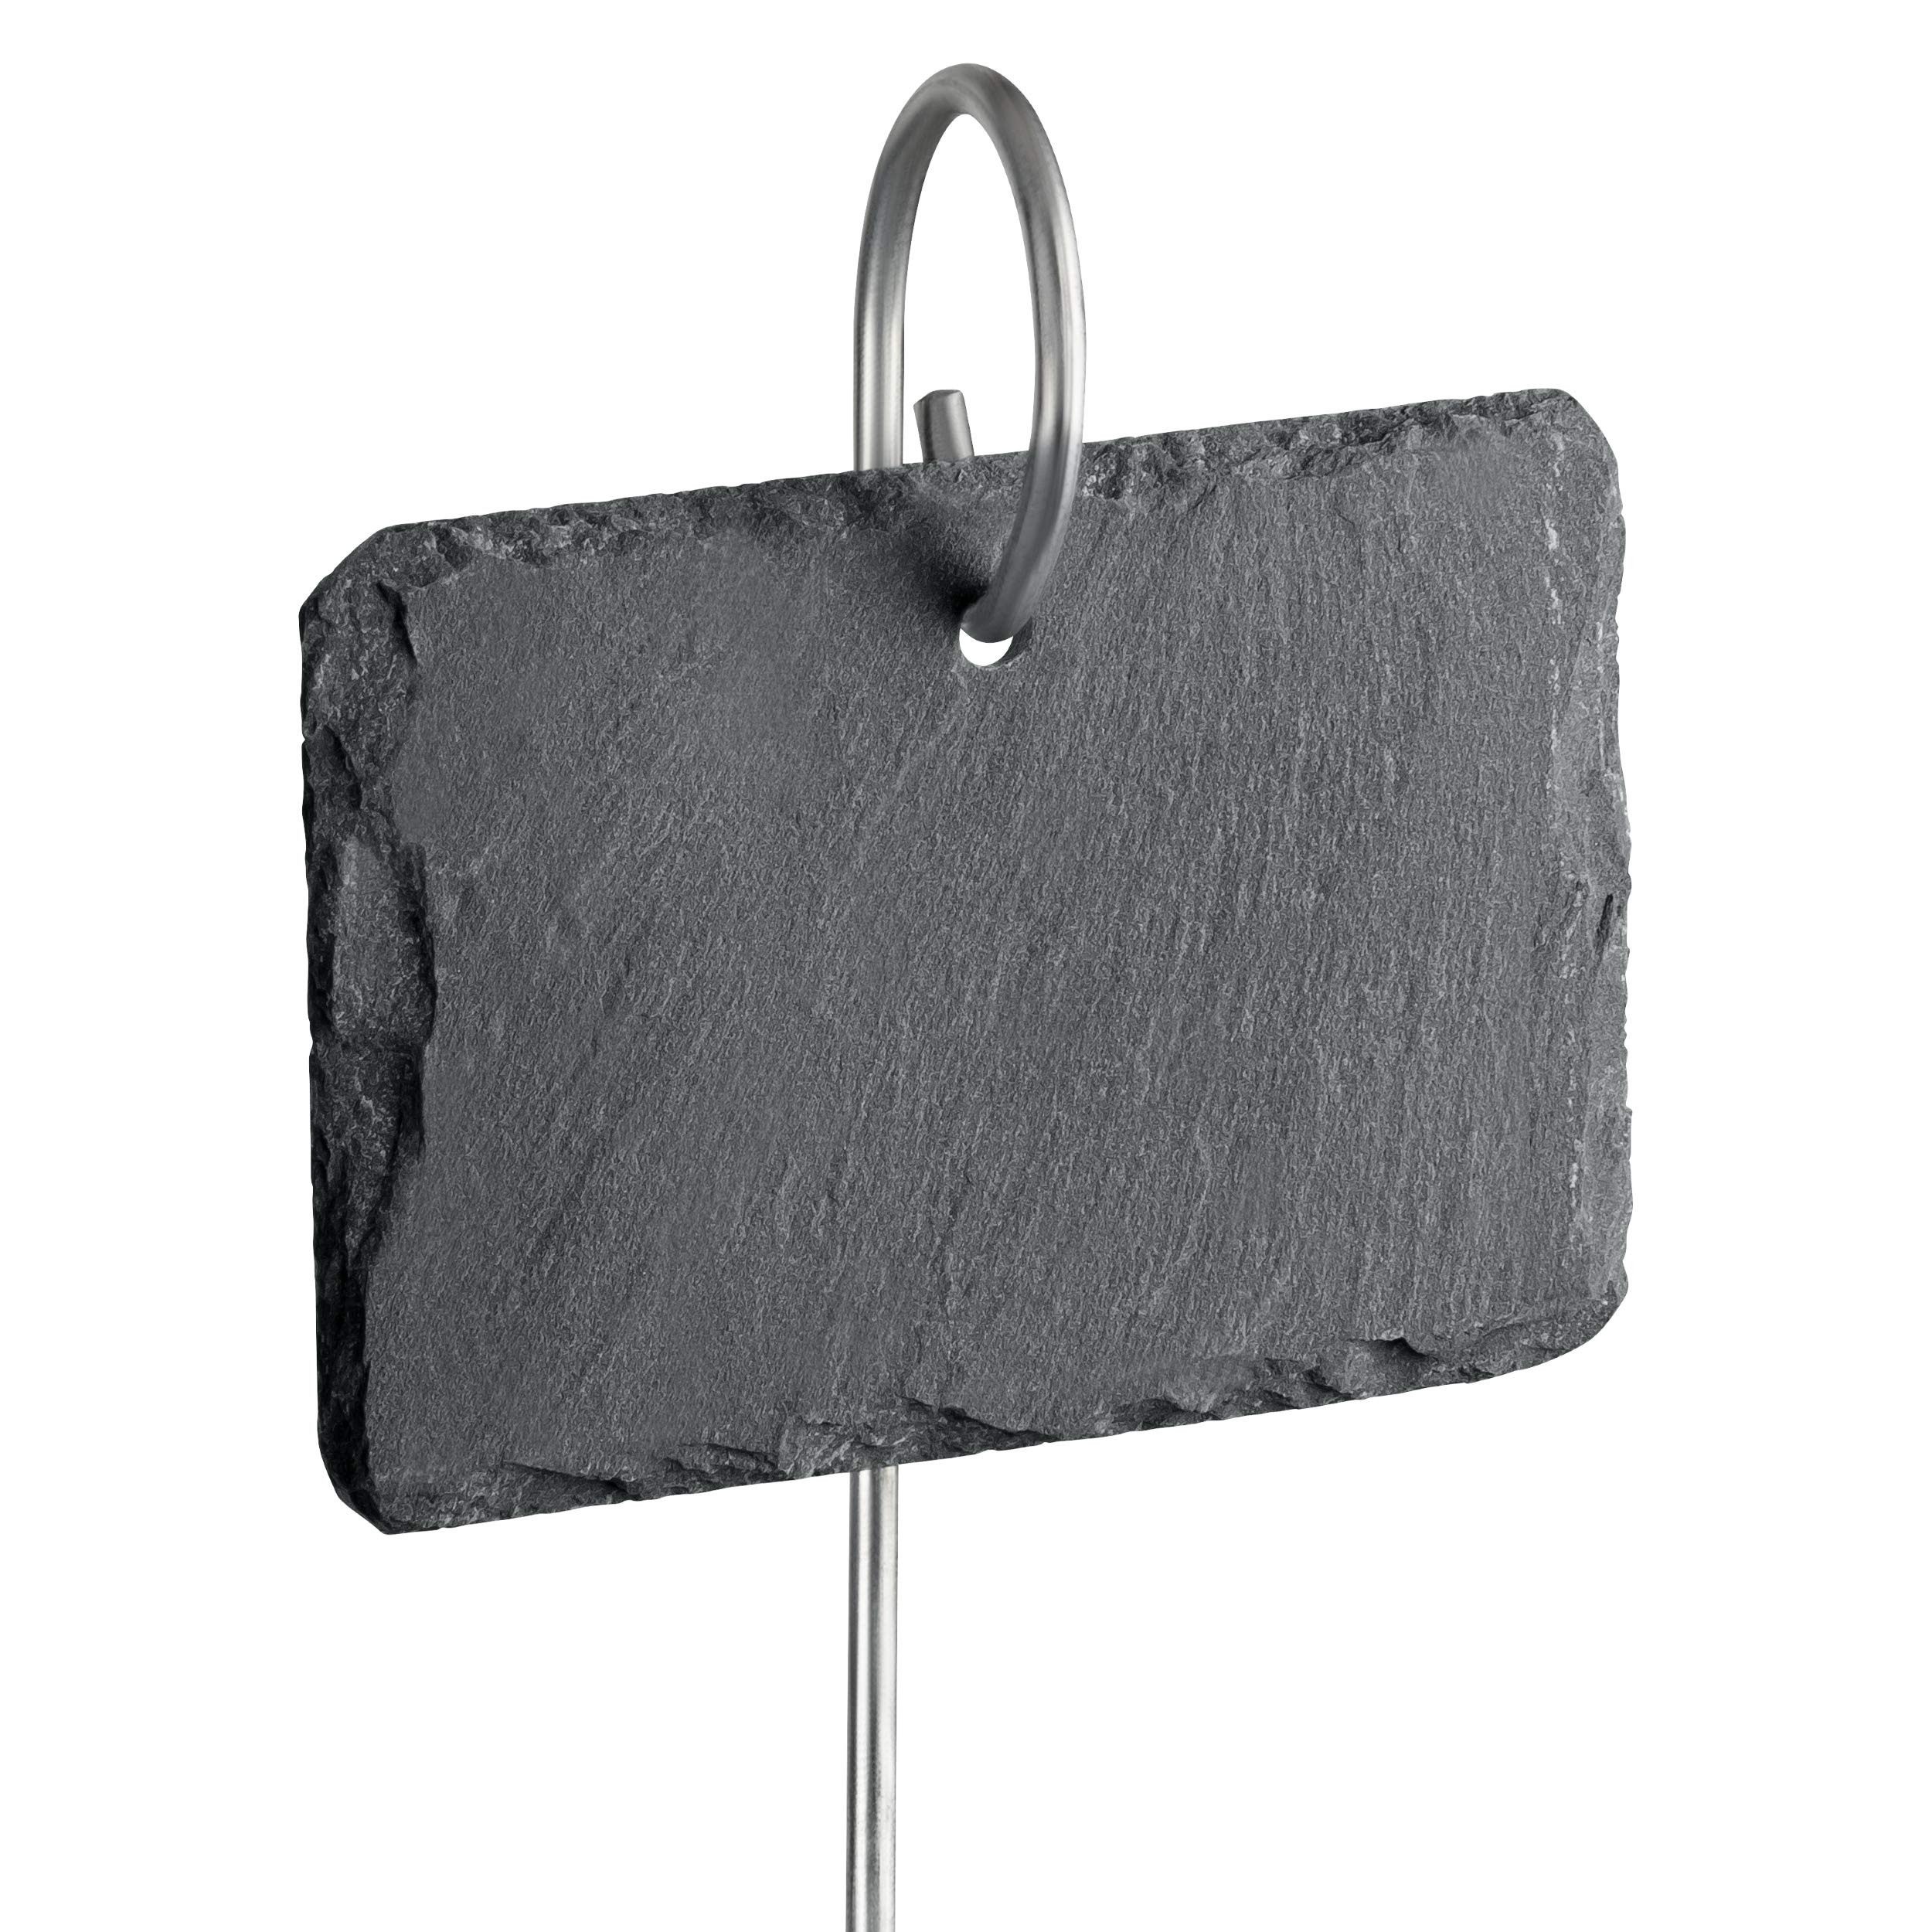 GardenMate 10-Pack Natural Style Slate Plant Labels (4'' x 2 3/4'') Hanging from a Stainless Steel Metal Rod (22'') by GardenMate